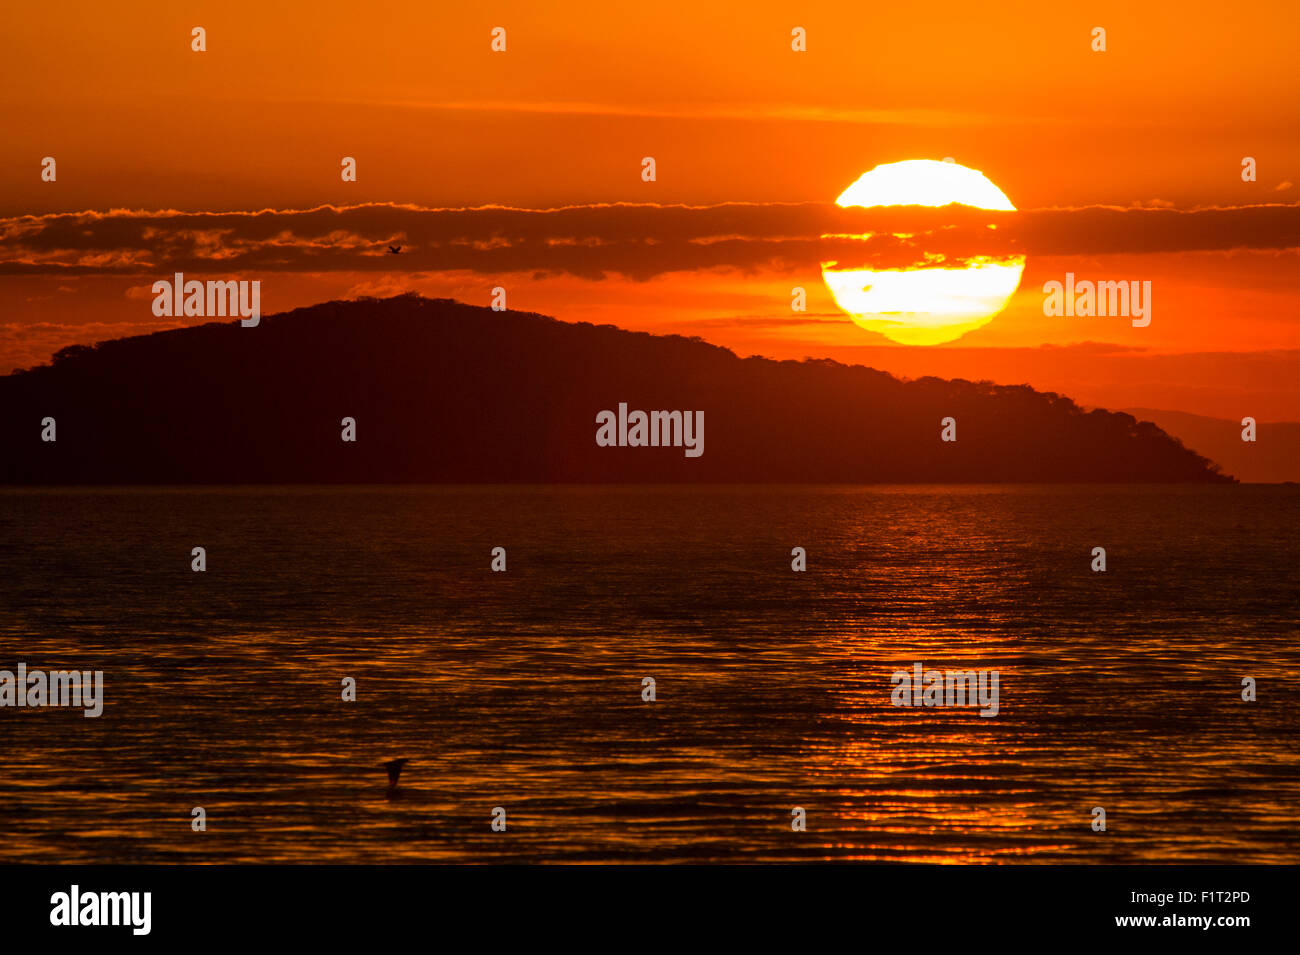 Sunset at Cape Maclear, Lake Malawi, UNESCO World Heritage Site, Malawi, Africa - Stock Image